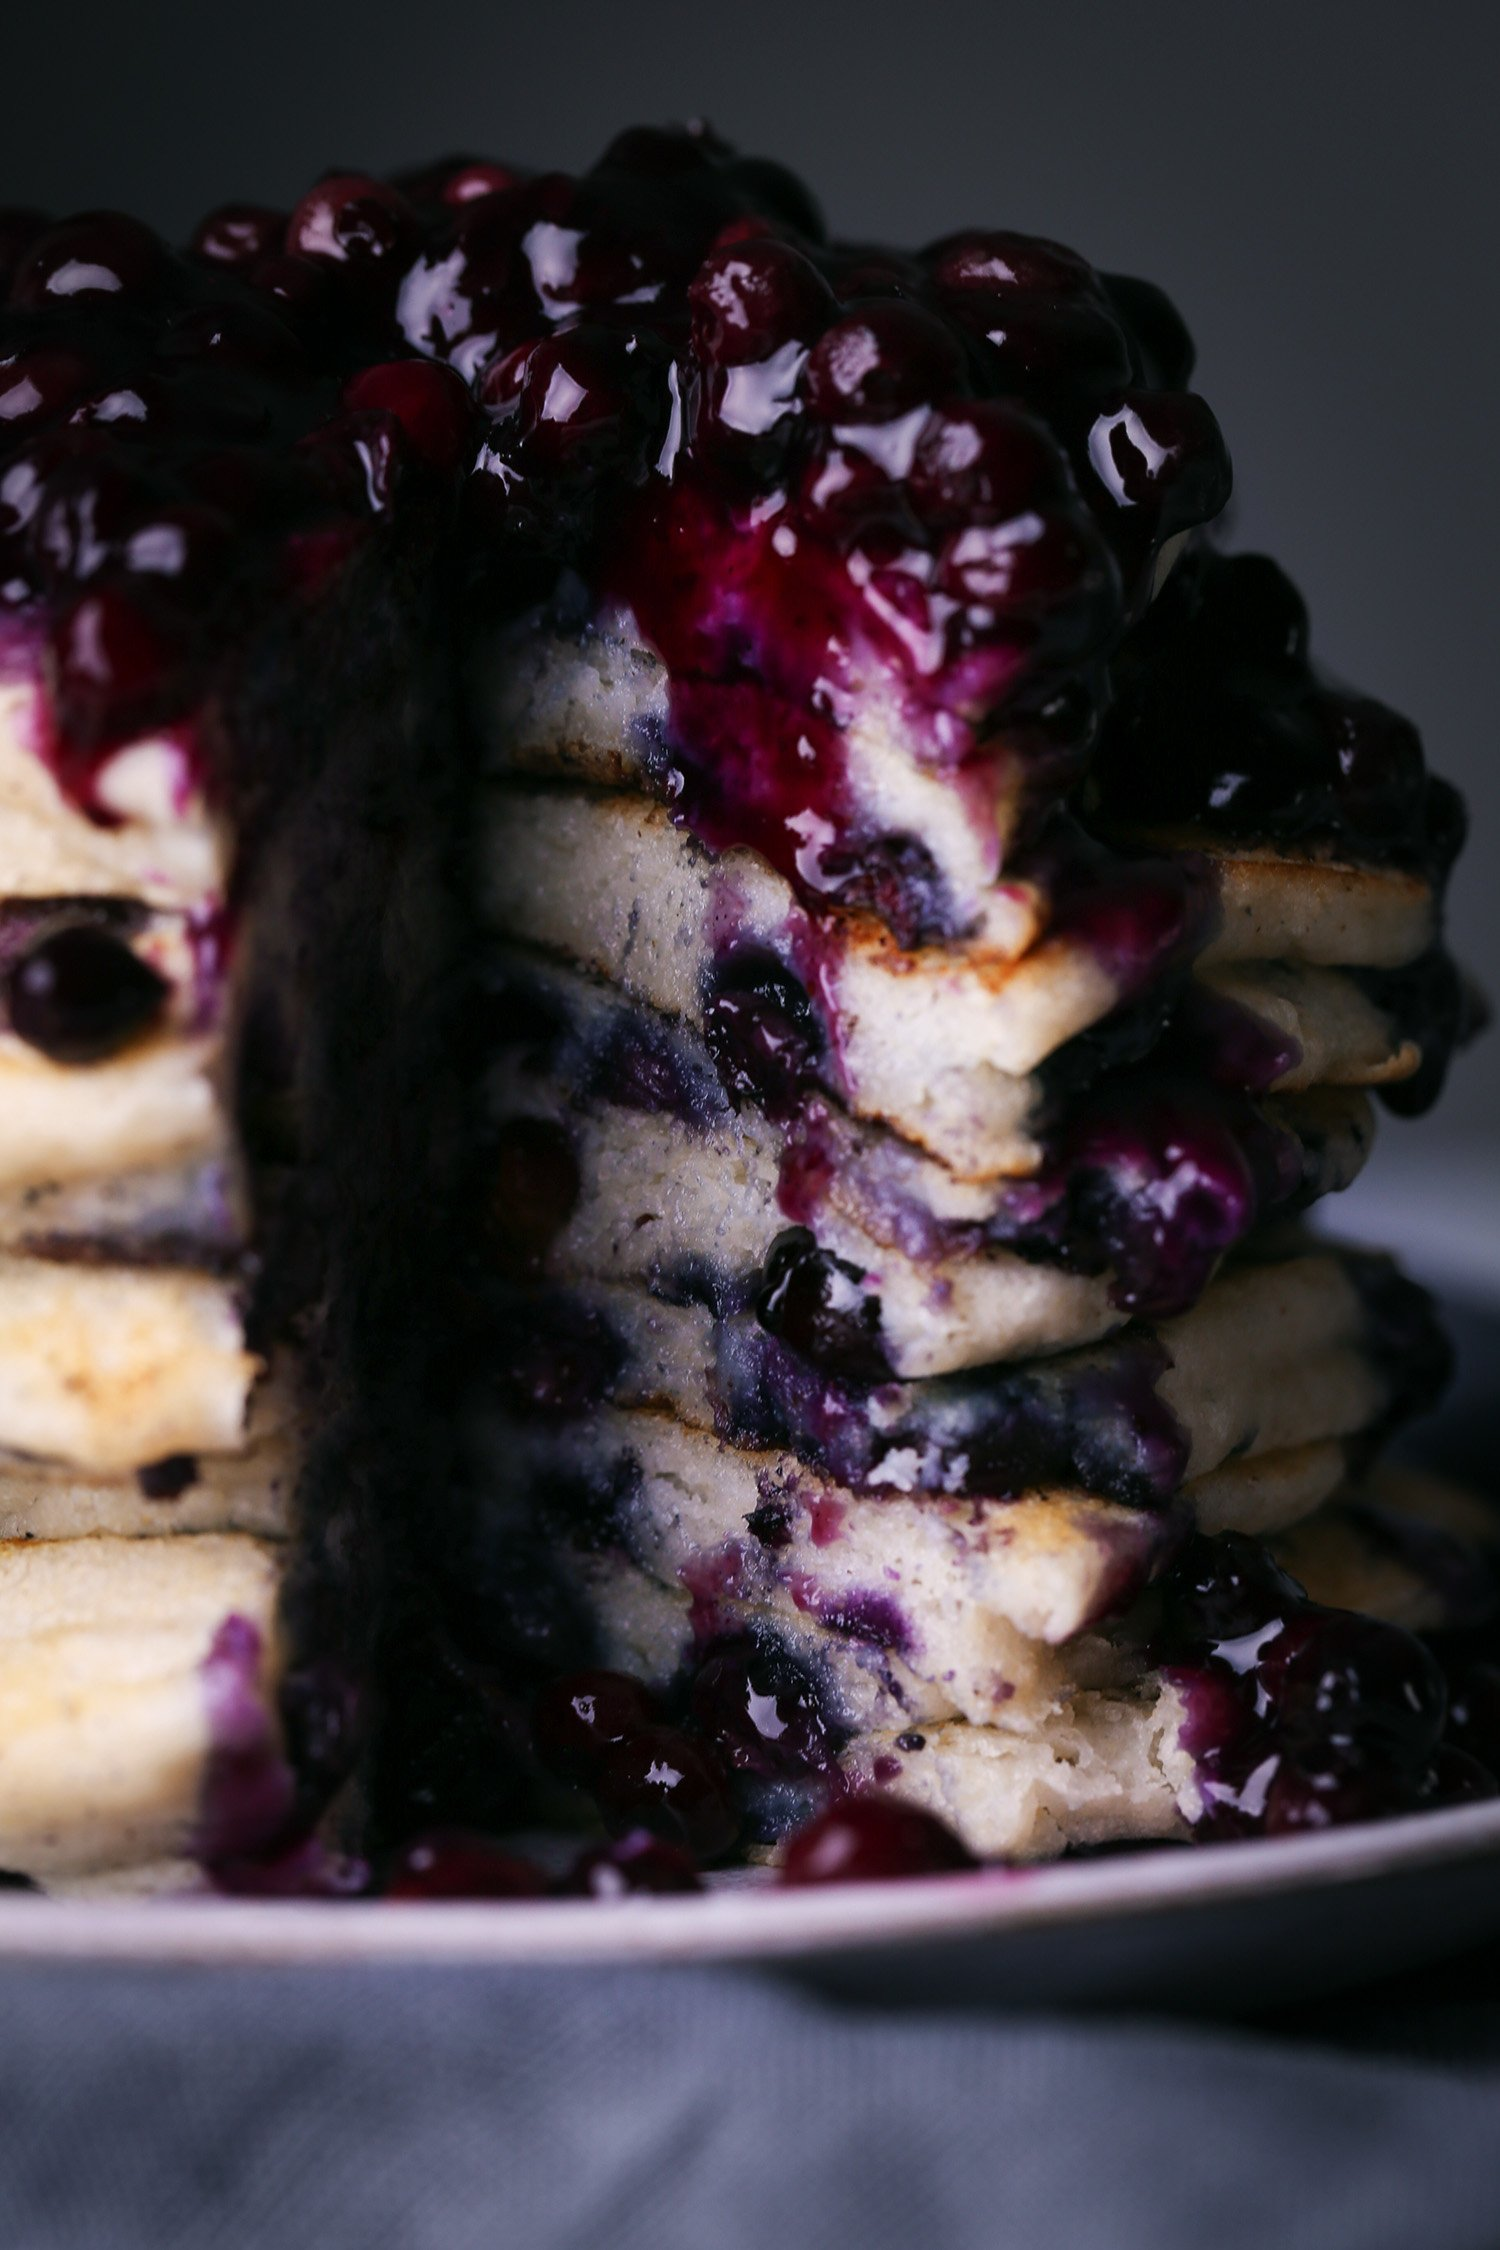 Simple Blueberry Pancakes with Blueberry Sauce | Vegan friendly with Gluten-free option